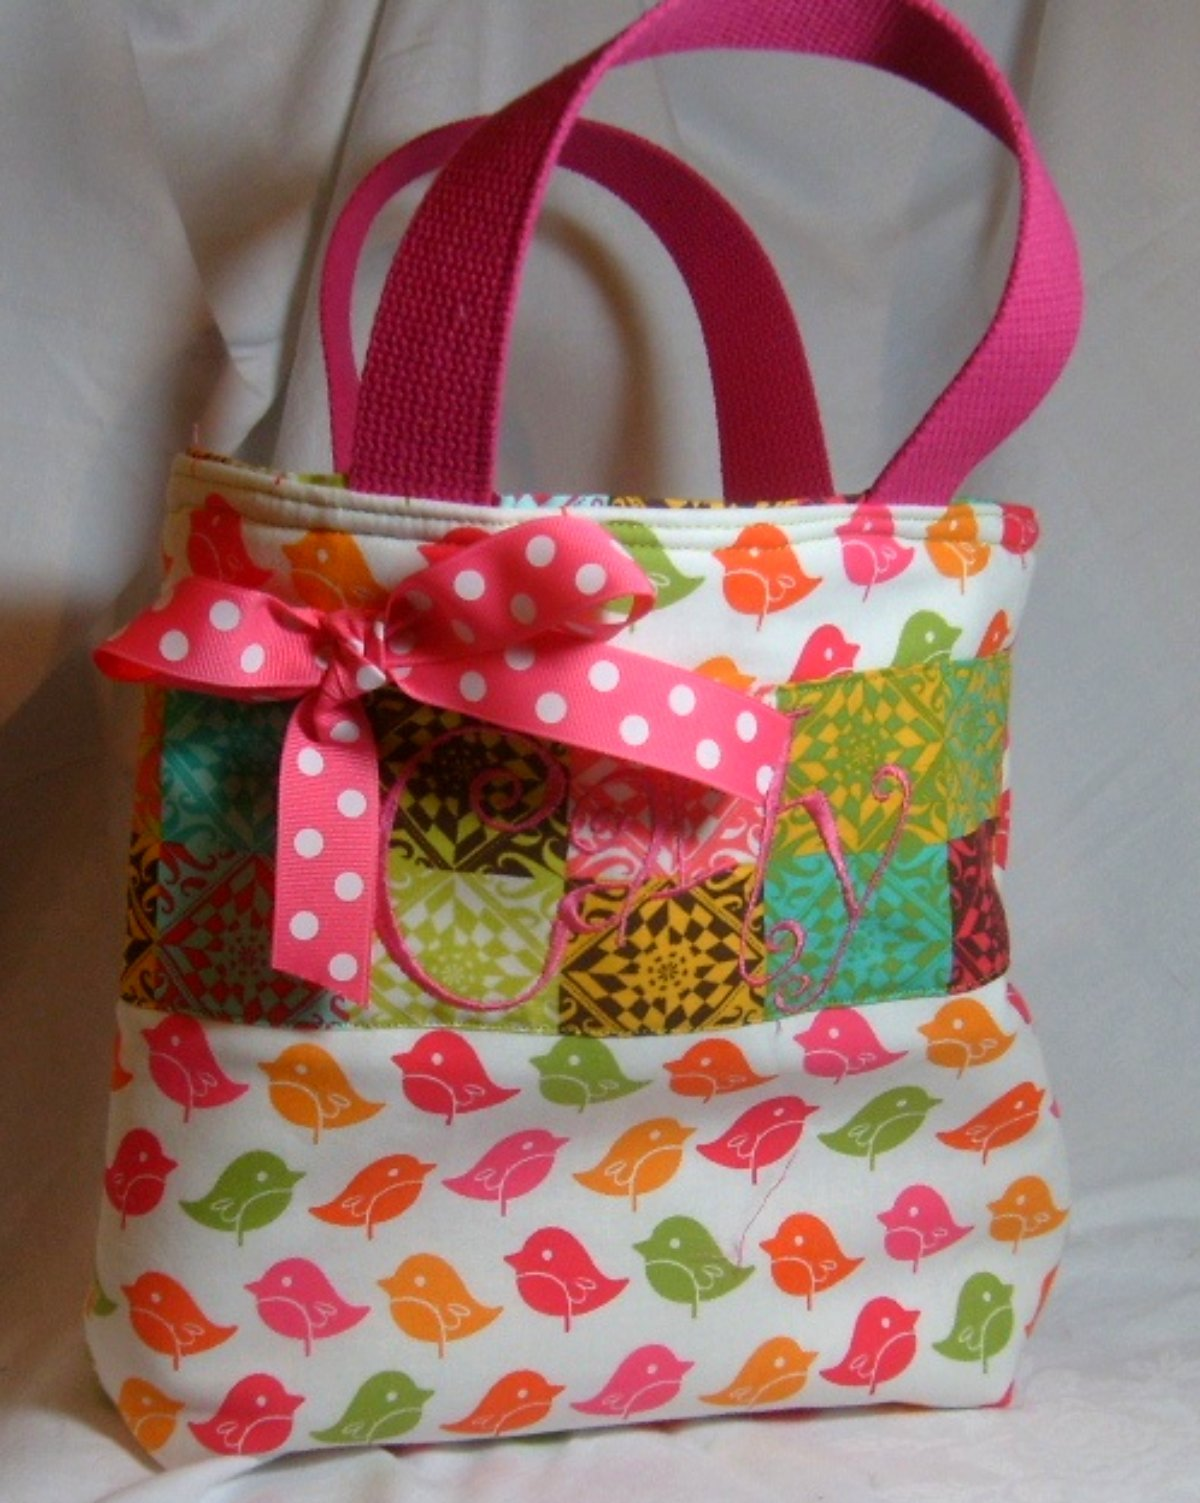 Flowers & Decor, orange, pink, green, Flower, Girl, Monogram, Custom, Personalized, Tote, Chamberrycherrydesigns